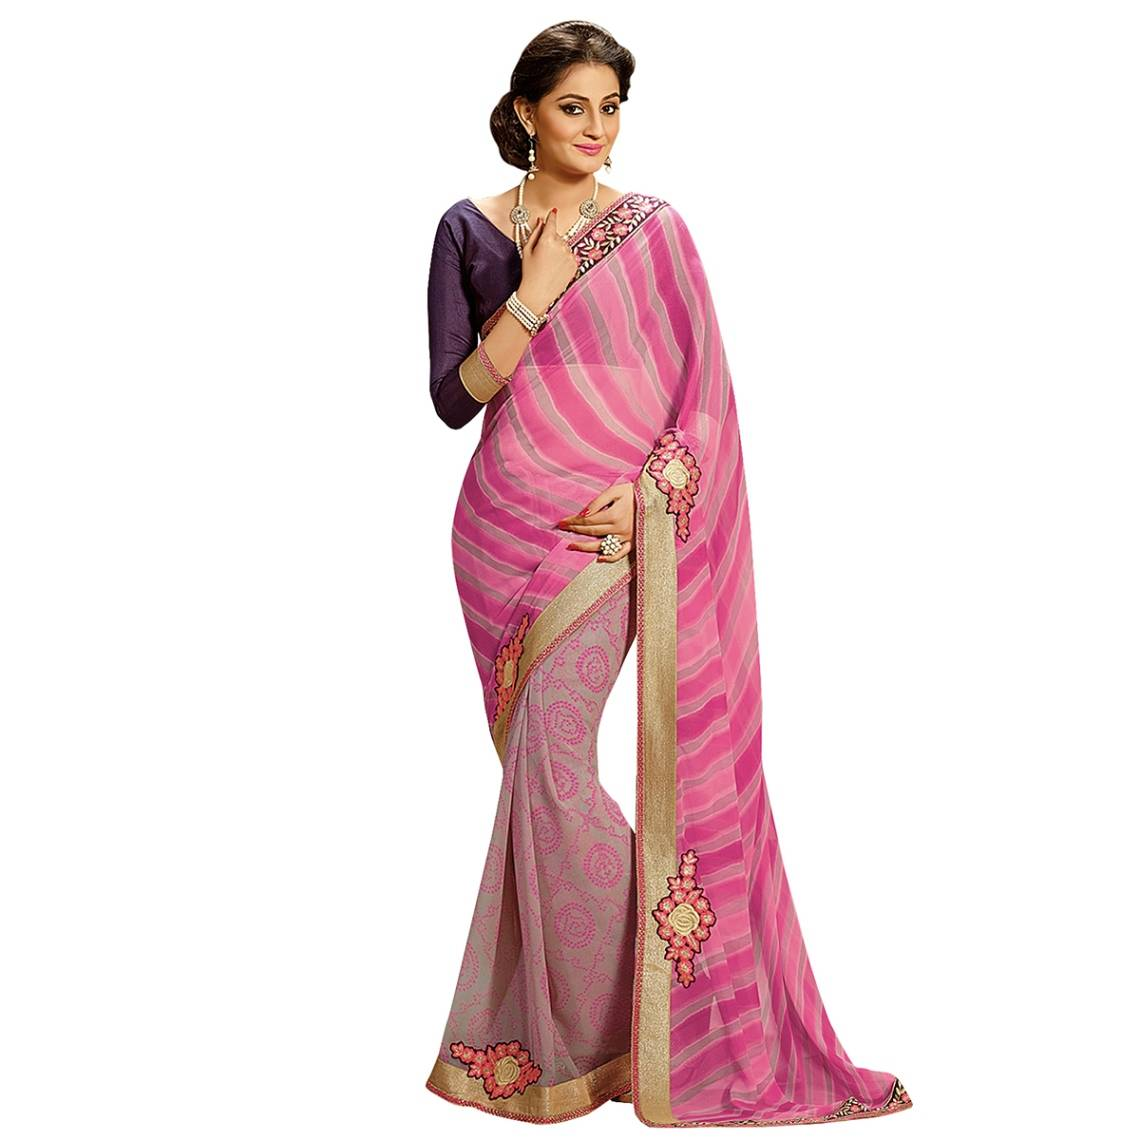 Shonaya Pink Colour Georgette Patch work Sarees With Blouse PieceSGLHR-4833